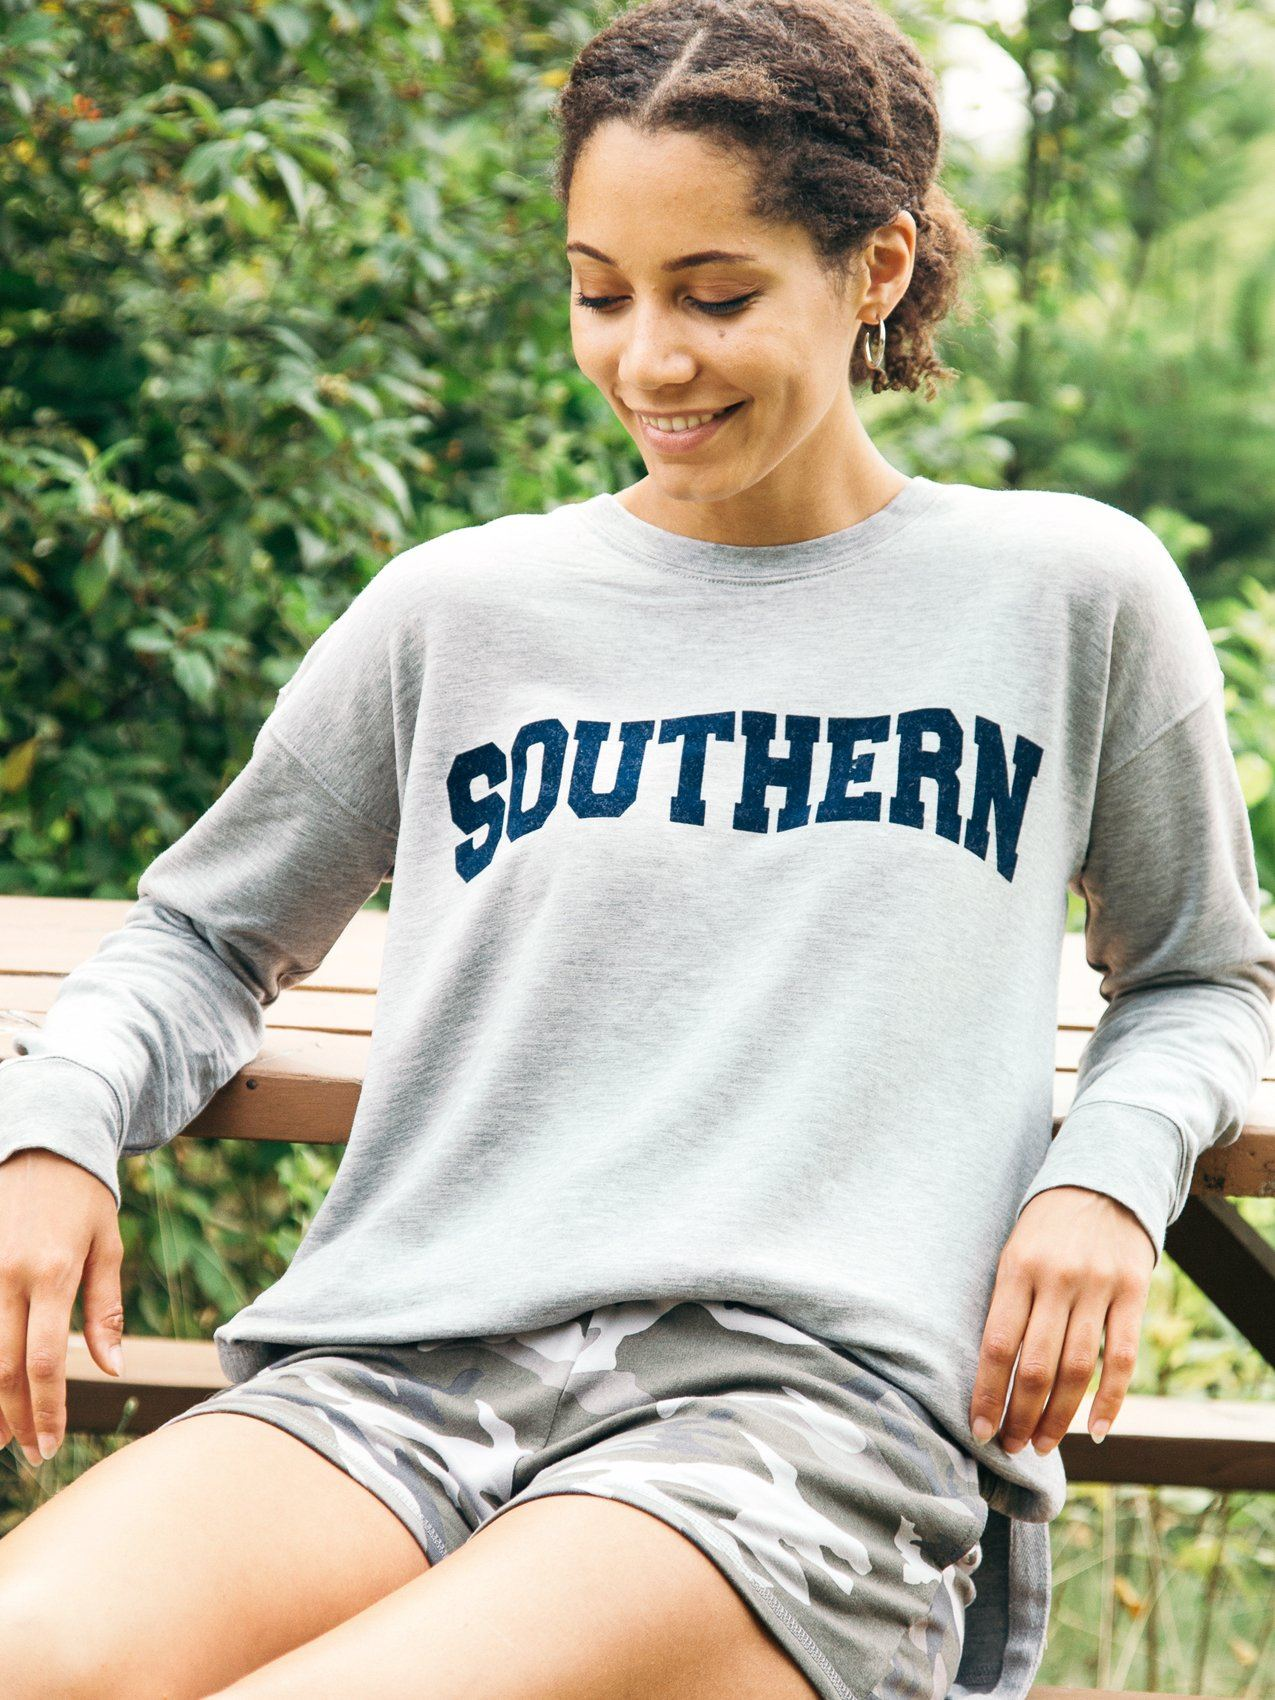 Southern Arden Sweatshirt Sweatshirt Thread & Supply S Heather Grey